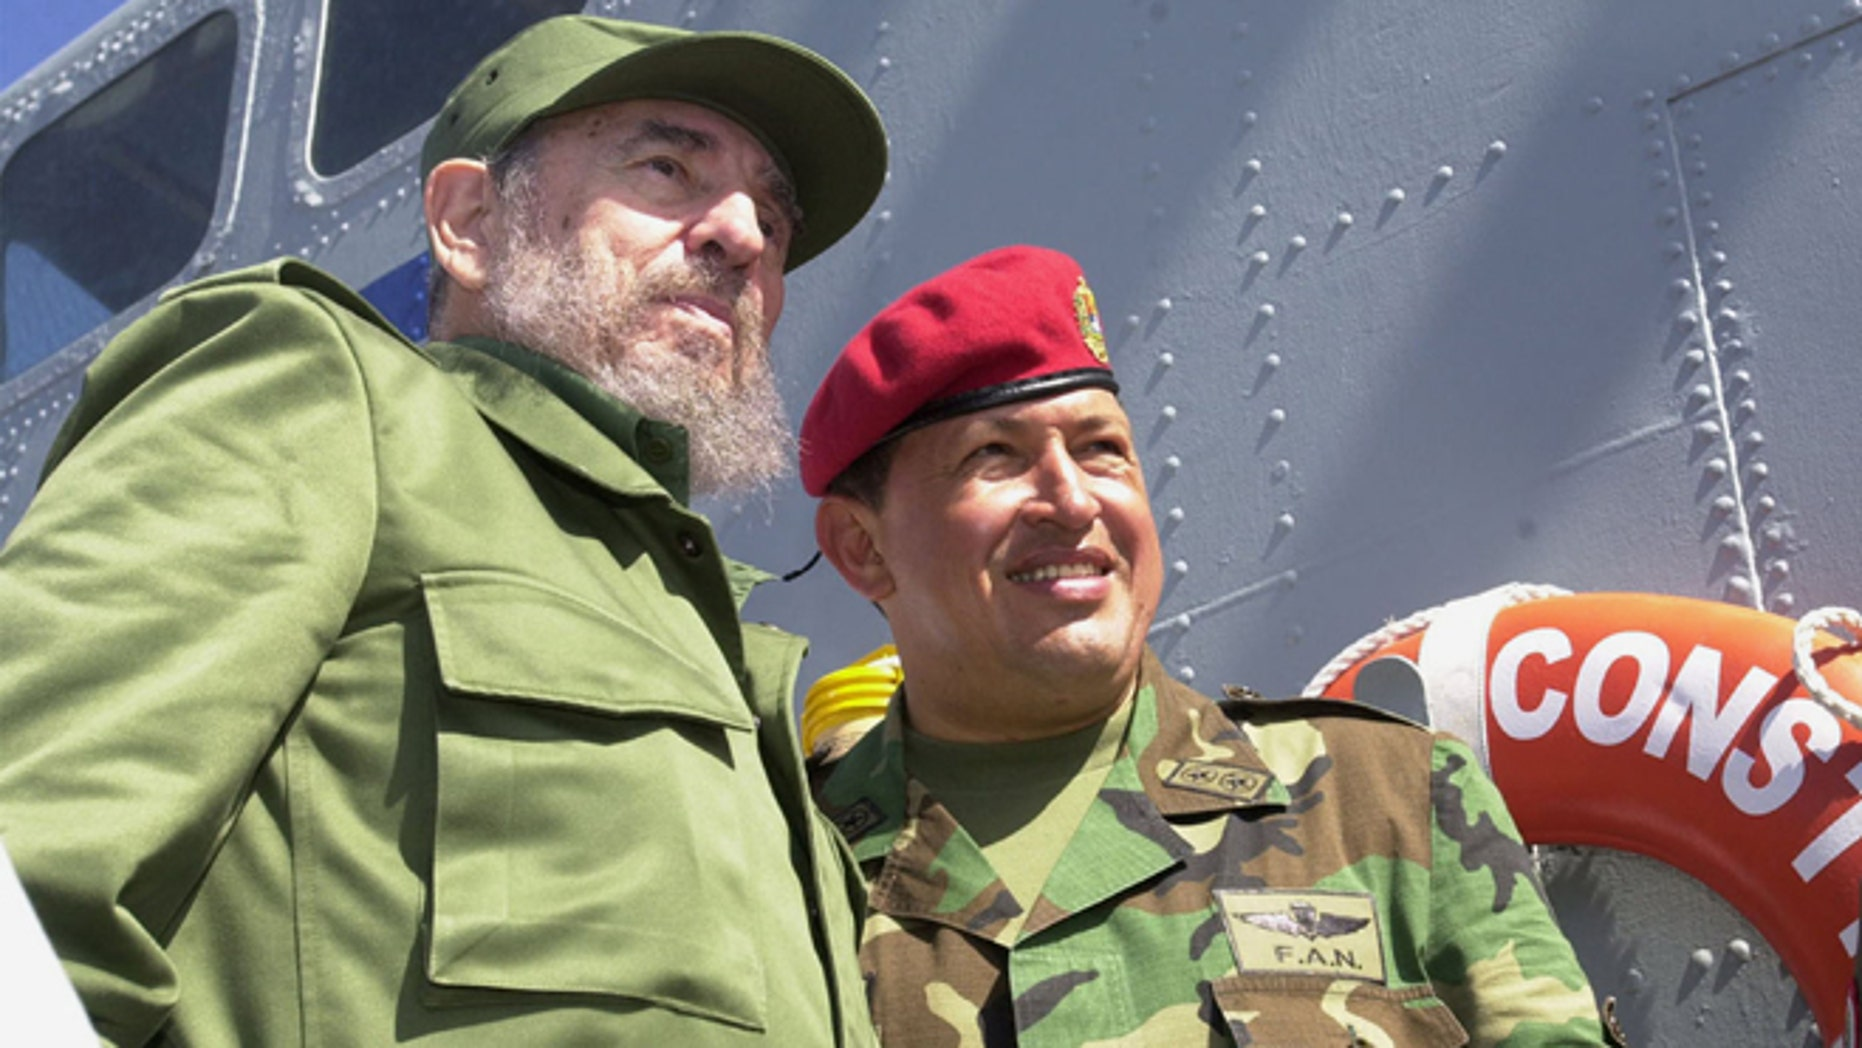 Cuban President Fidel Castro (L) and Venezuelan President Hugo Chavez travel onboard a Venezuelan Navy vessel from Porlamar to Pampatar prior a ceremony to promulgate a new Fishing Law, December 11, 2001 at Margarita Island, Venezuela. Castro is in Panpatar to attend the two-day meeting of the Association of Caribbean States (ACS). (Photo by Miraflores/Getty Images)